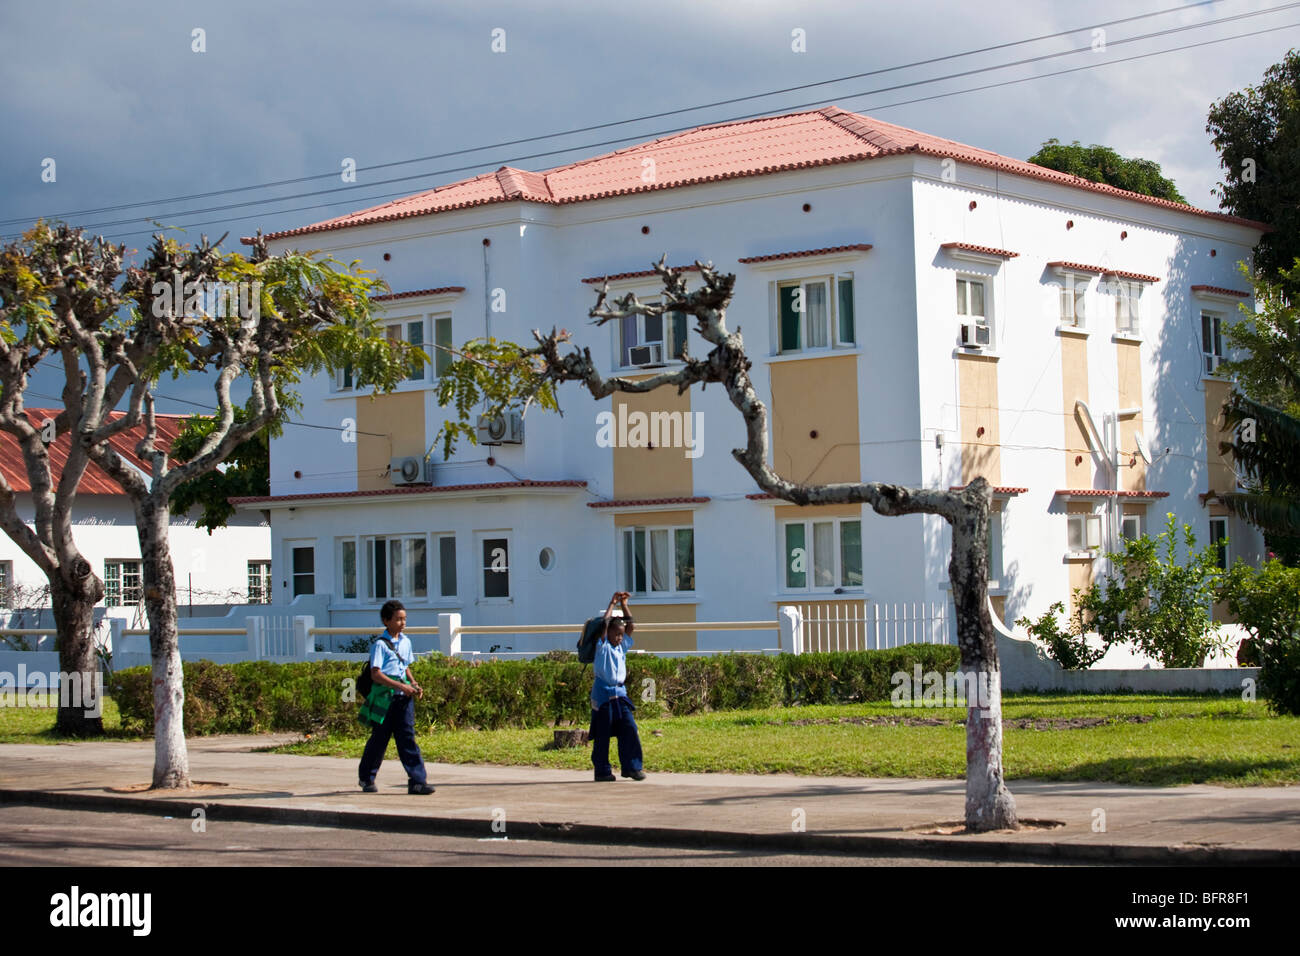 White building with schoolboys walking past - Stock Image